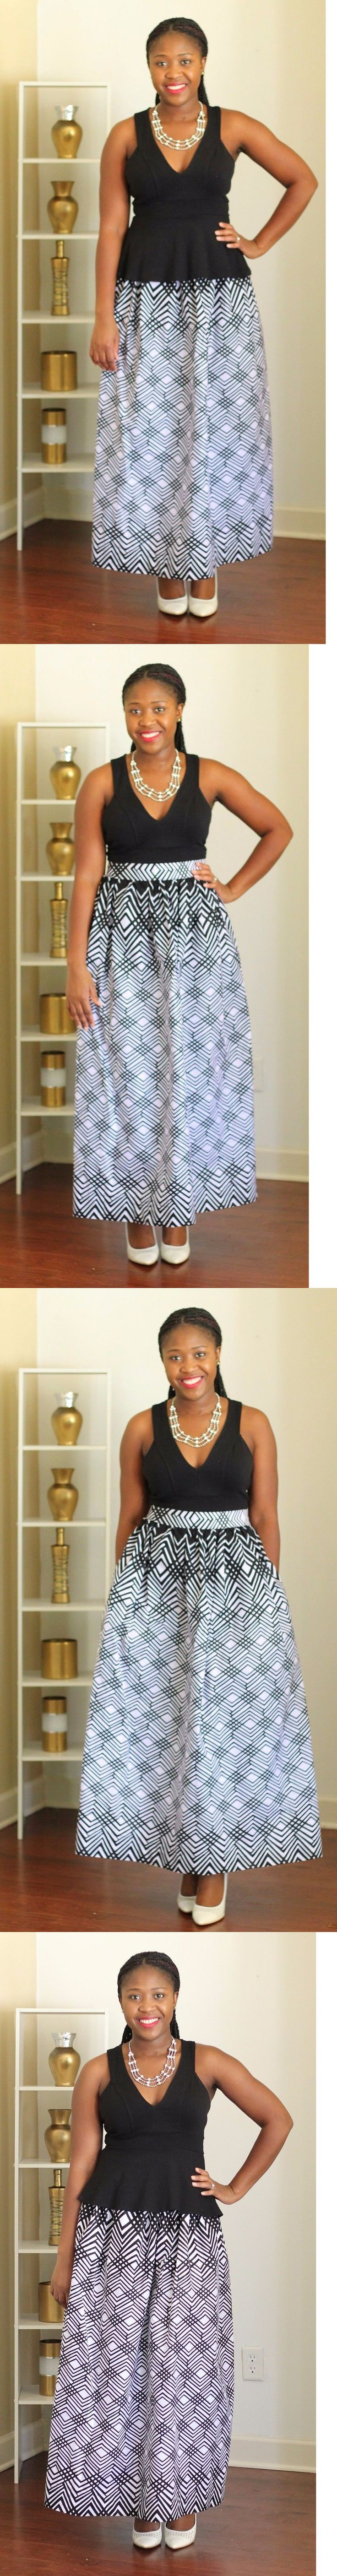 Africa 155241: African Wax Print Maxi Skirt, Plus Size Skirt Black And White Ank... at Diyanu